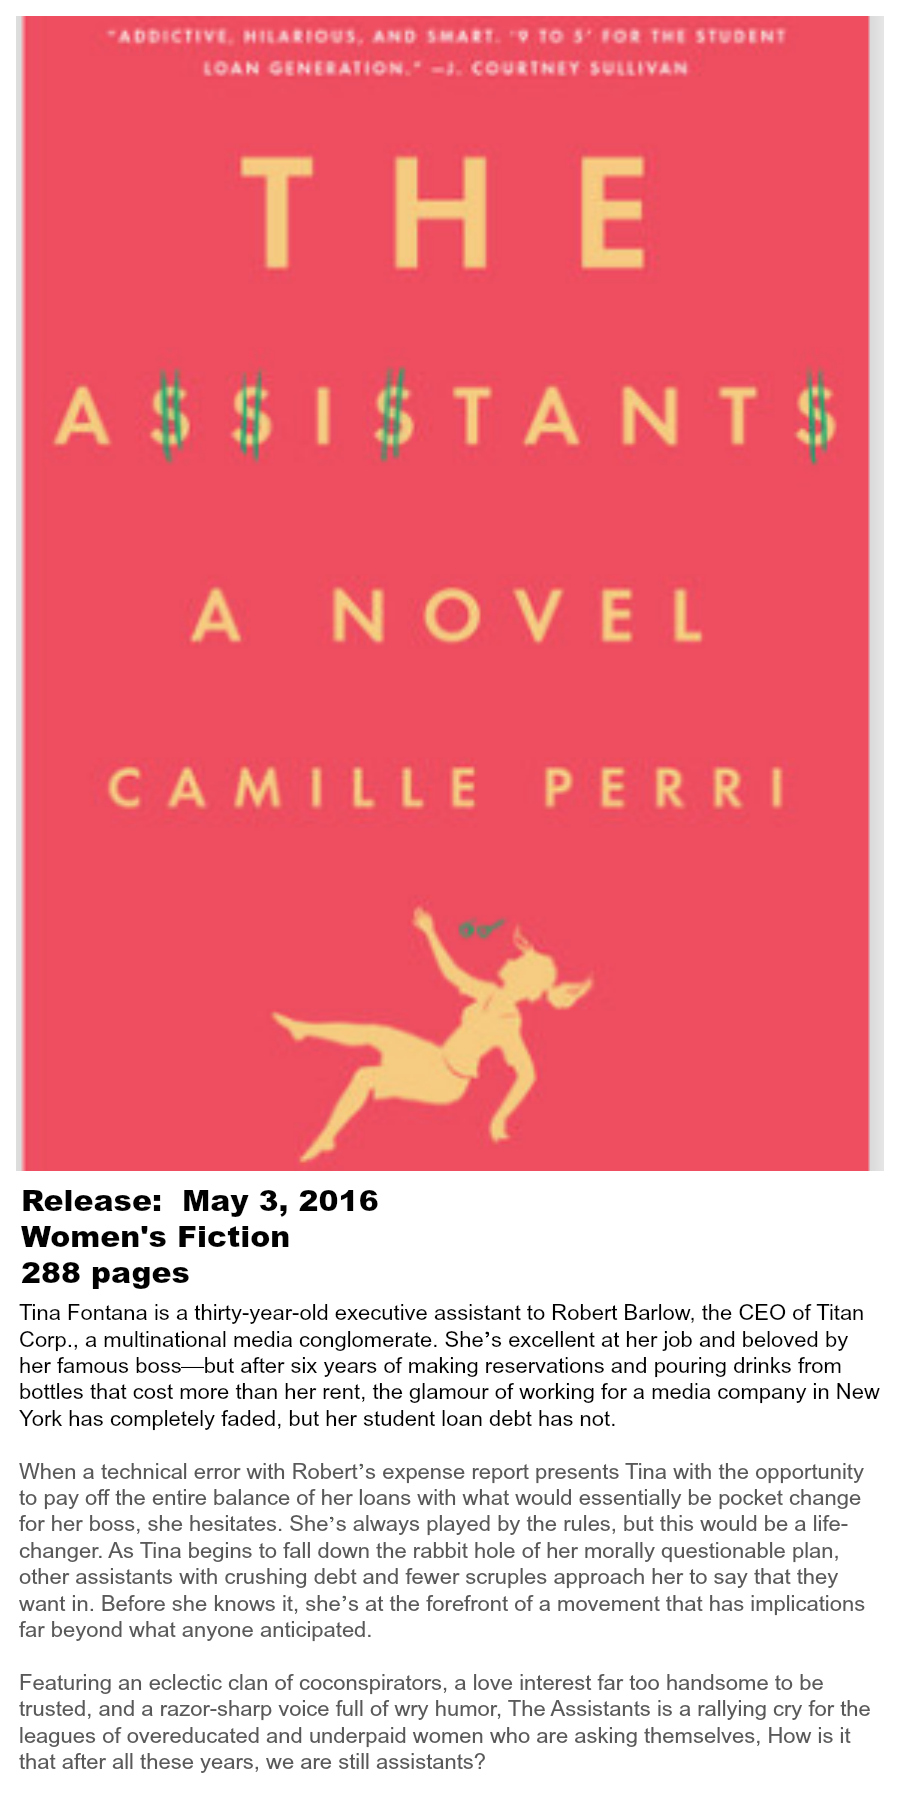 Must-read Books of Summer 2016 - The Assistants Camille Perri